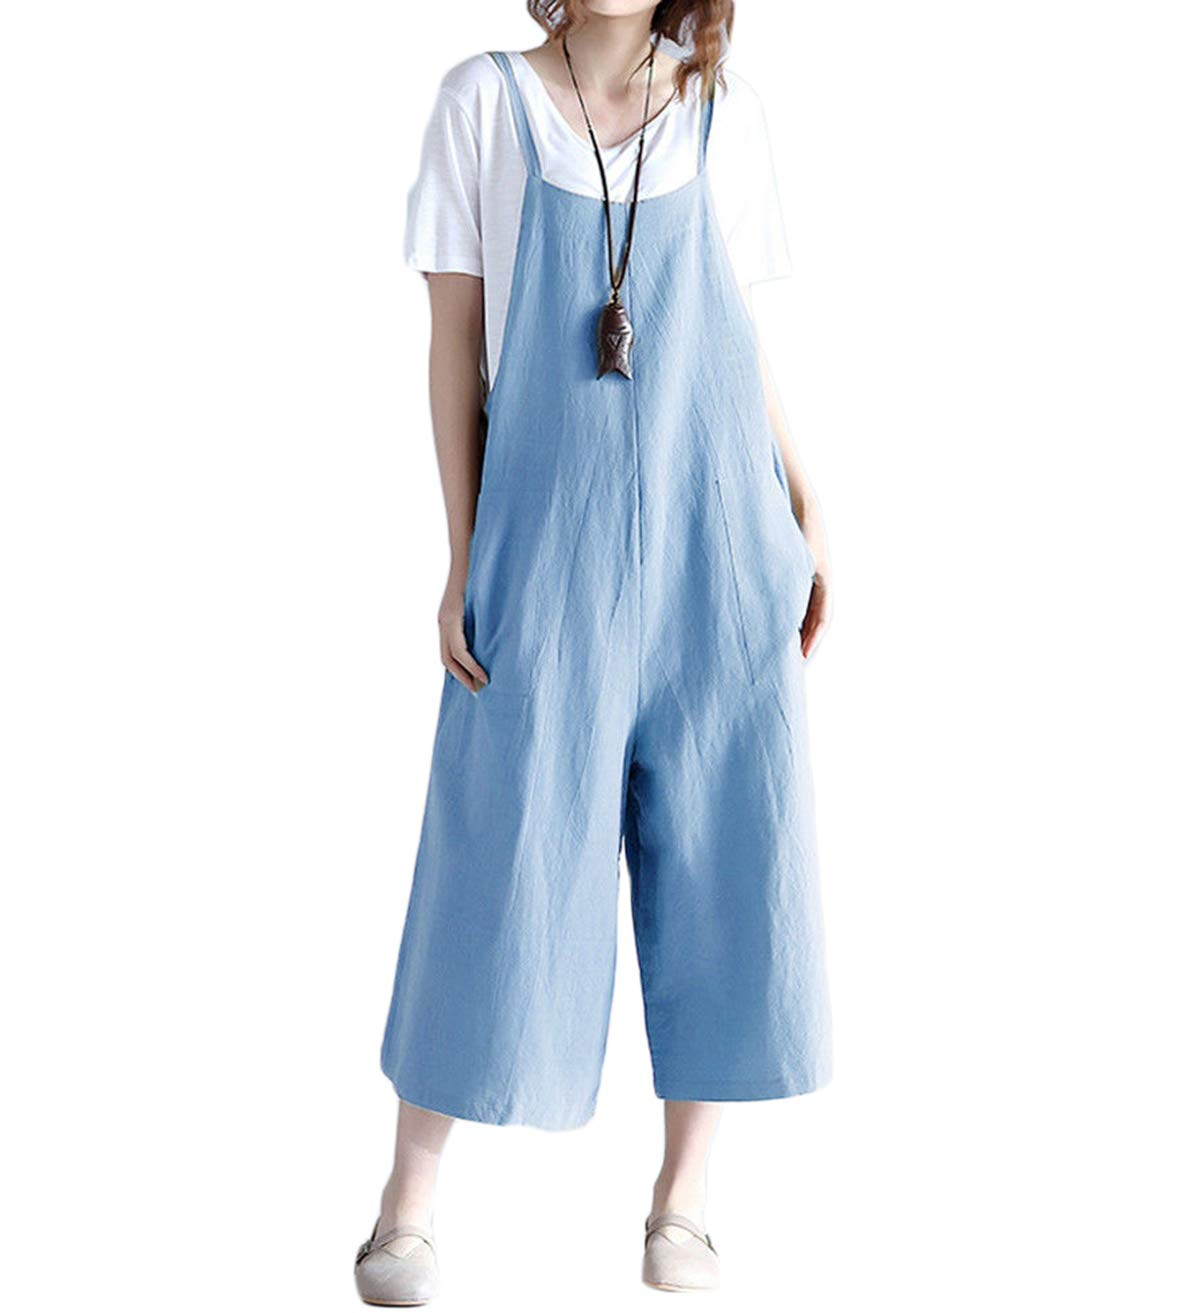 Harri me Women Summer Loose Linen Suspender Overalls Jumpsuit Bib Trousers Wide Leg Pants Plus Size